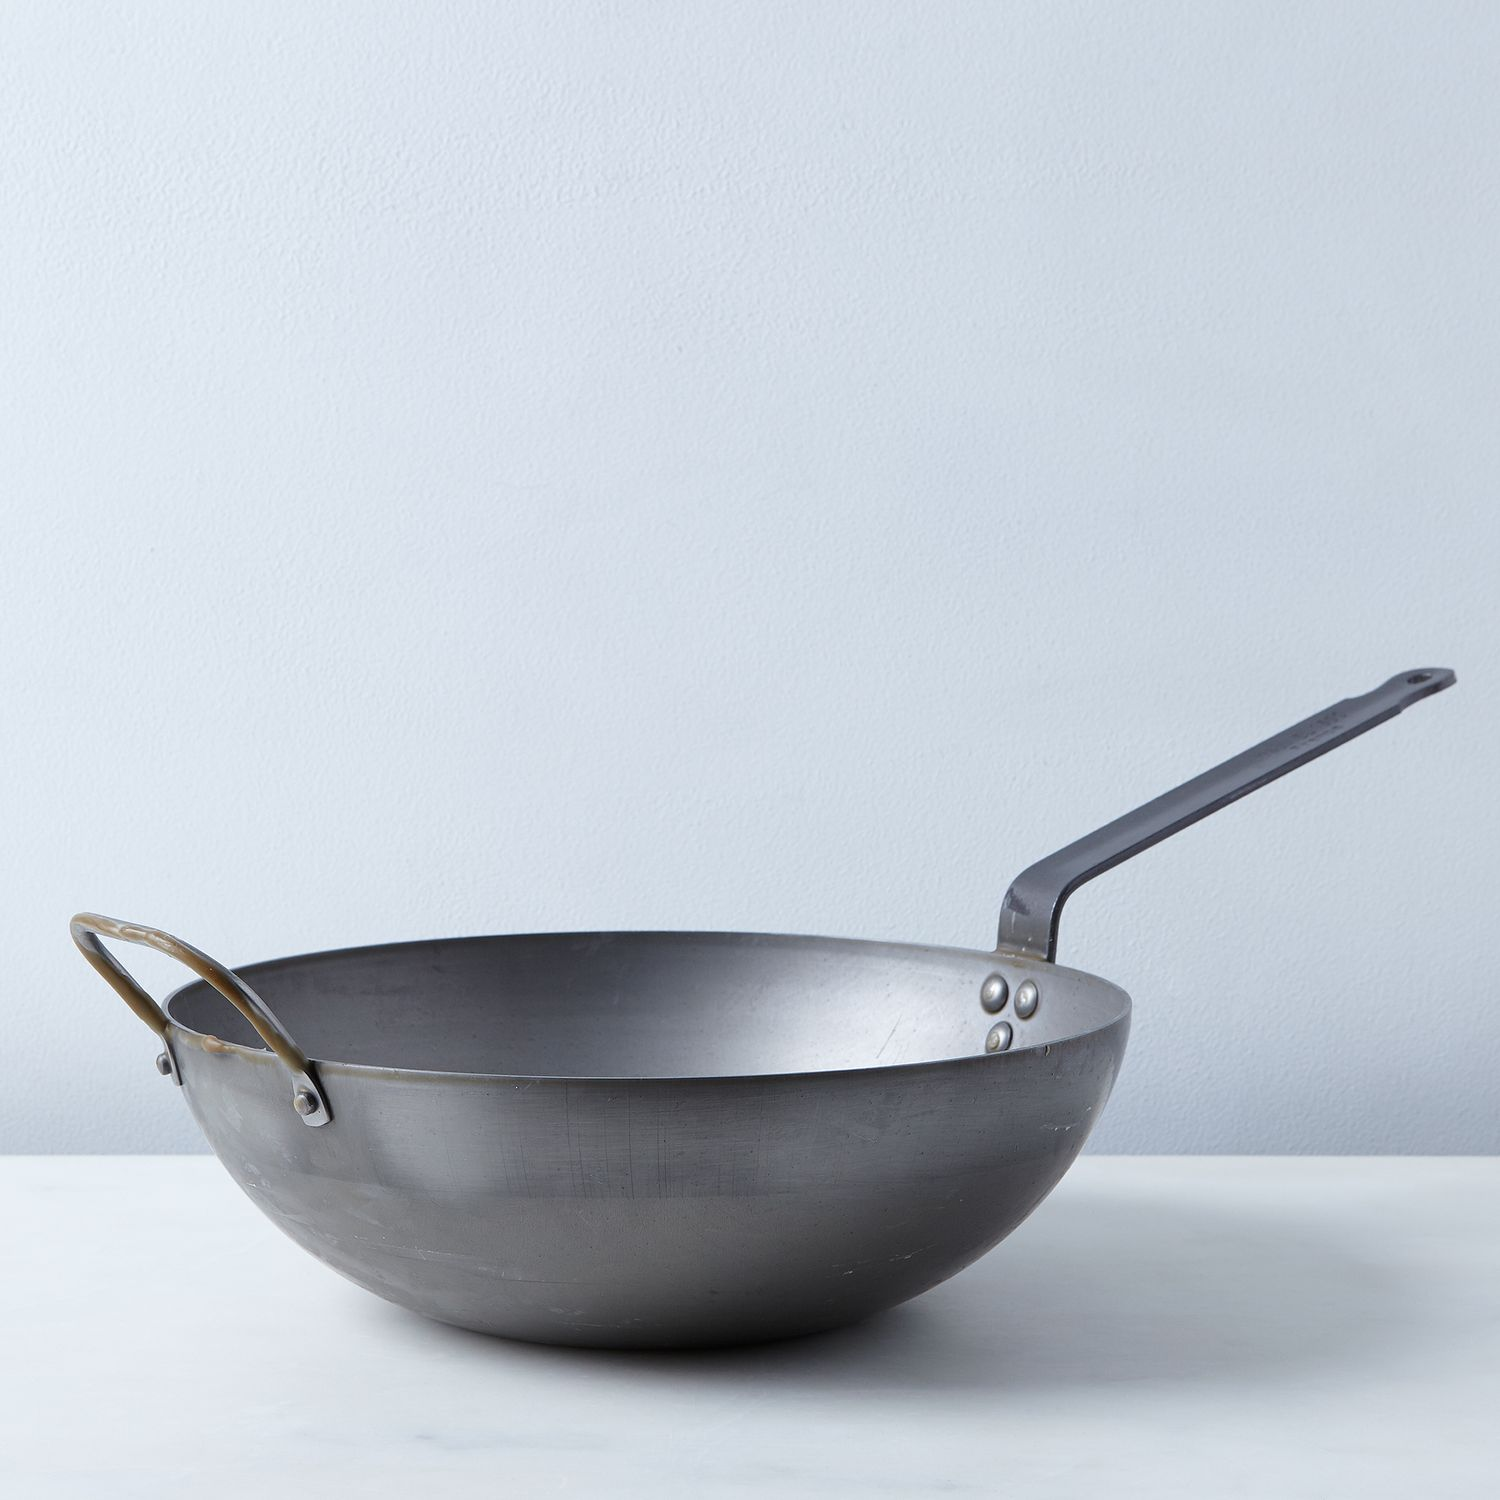 Mauviel Msteel Wok On Food52-5332